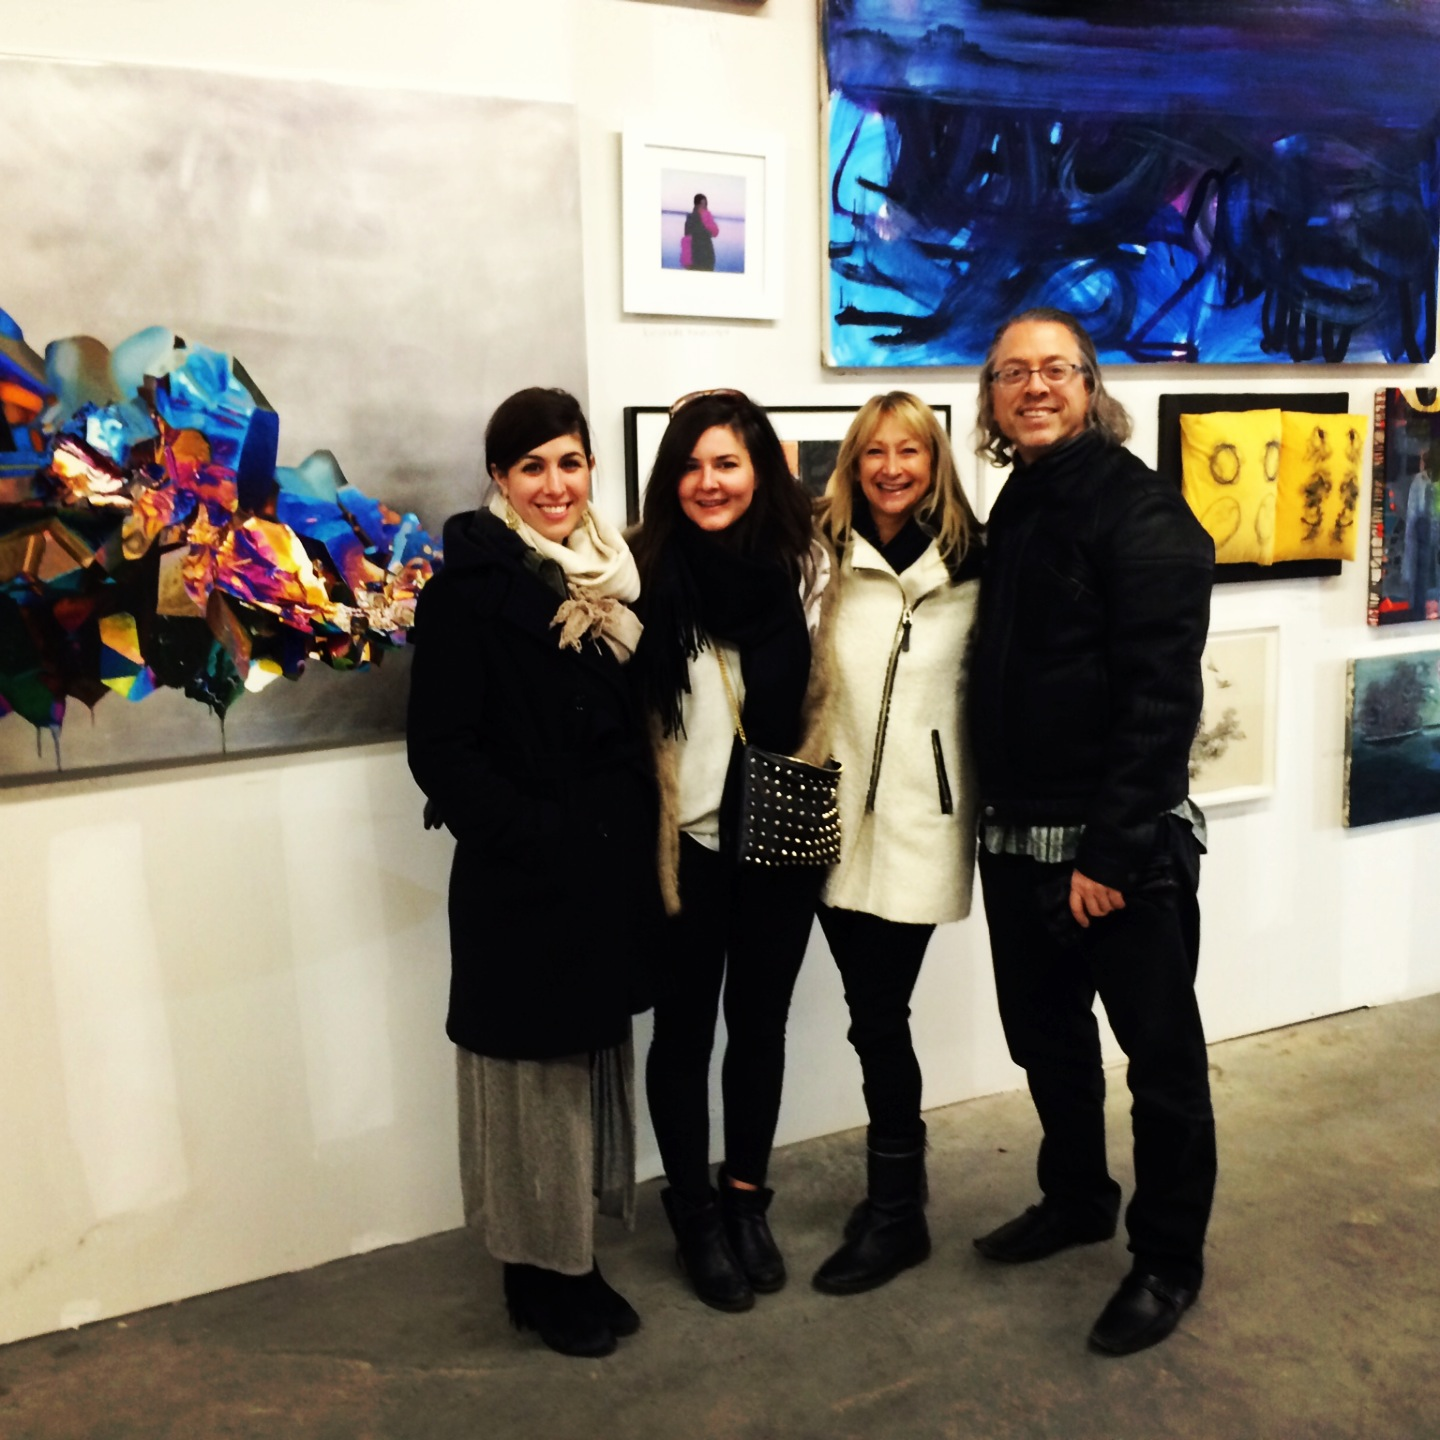 Some friends checking out my painting at The Last Brucennial